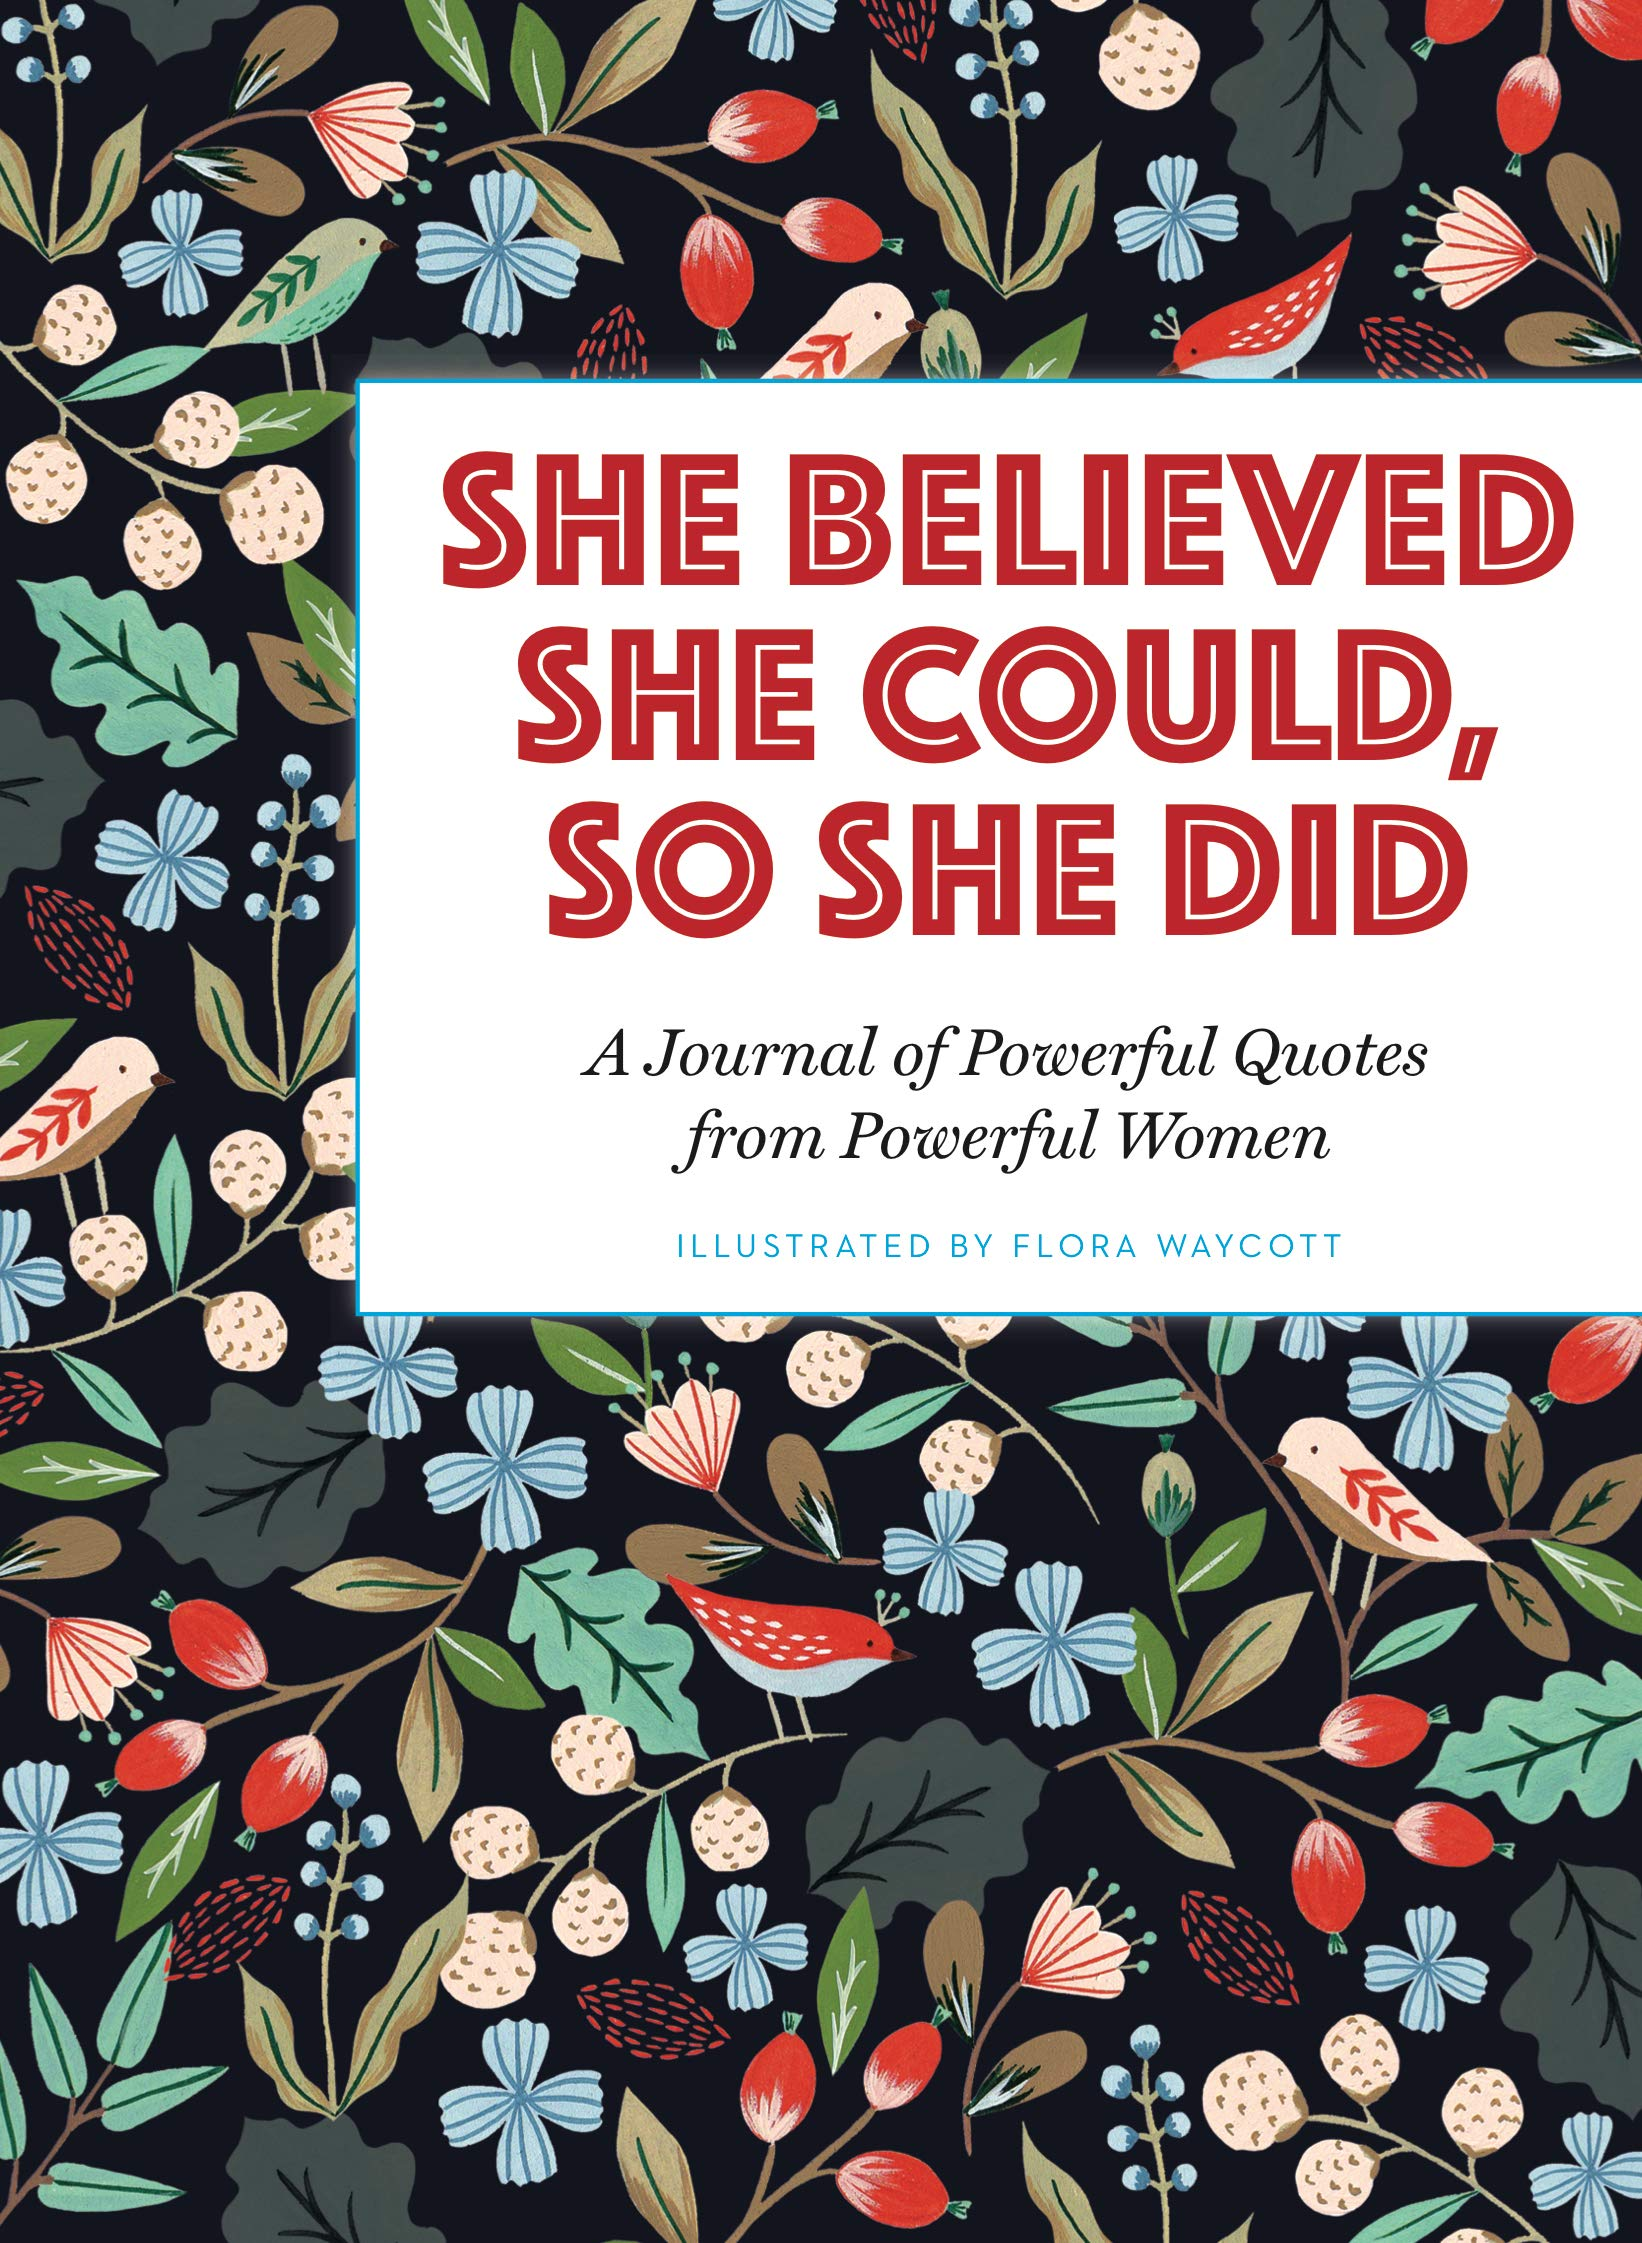 She Believed She Could So She Did: A Journal of Powerful Quotes from Powerful Women (Journals)